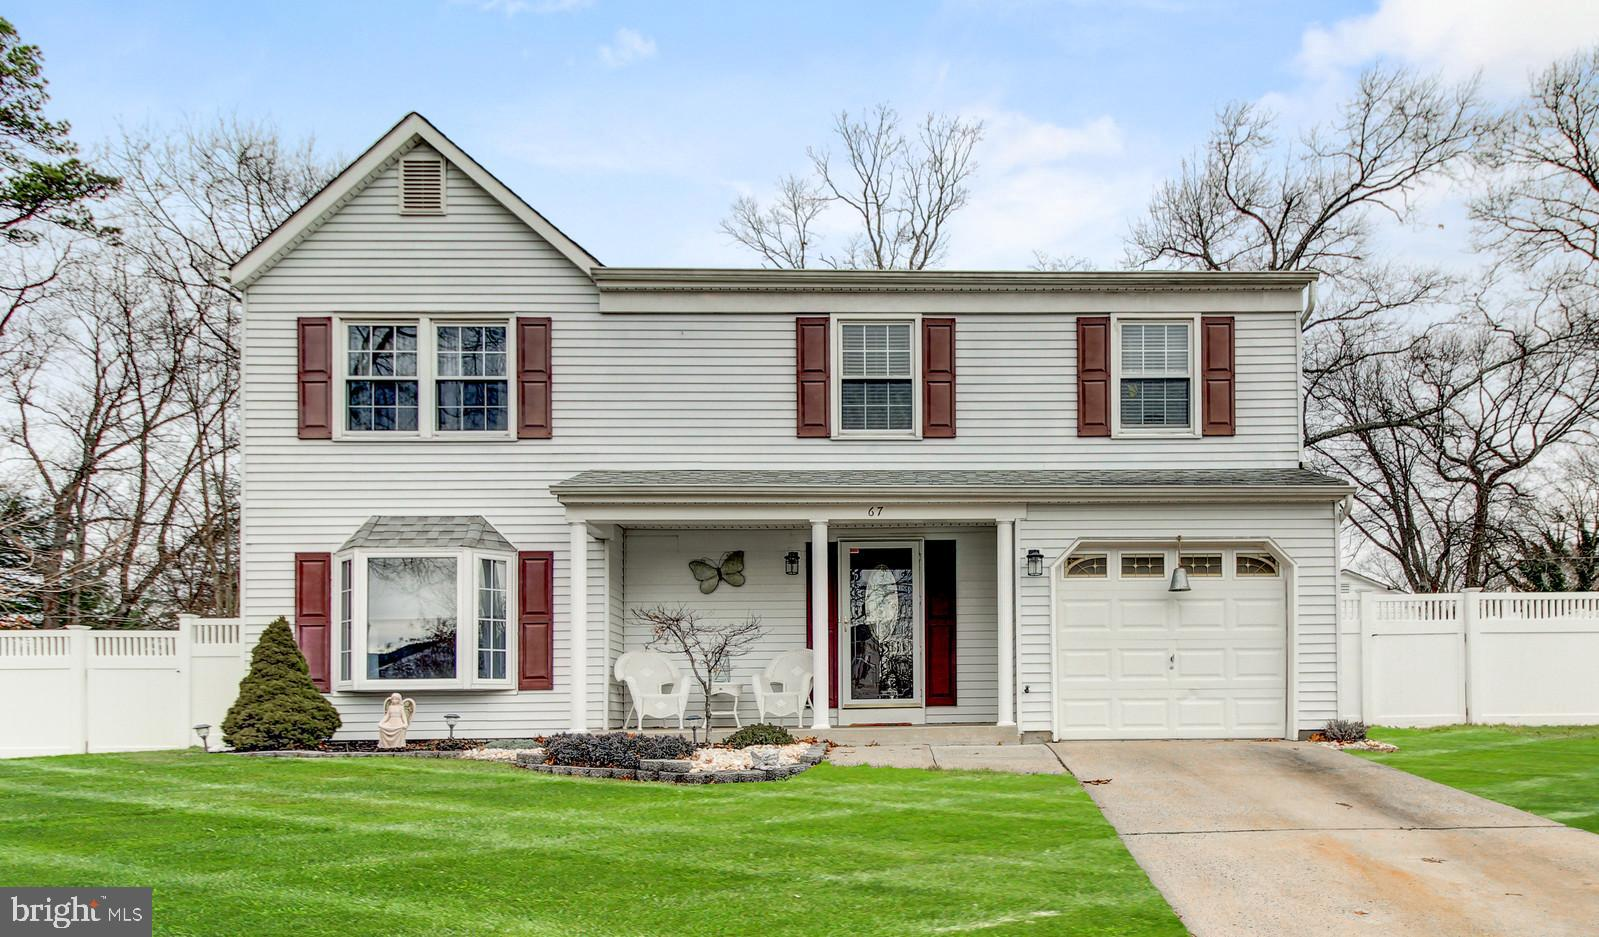 67 CONCORD CIRCLE, HOWELL, NJ 07731